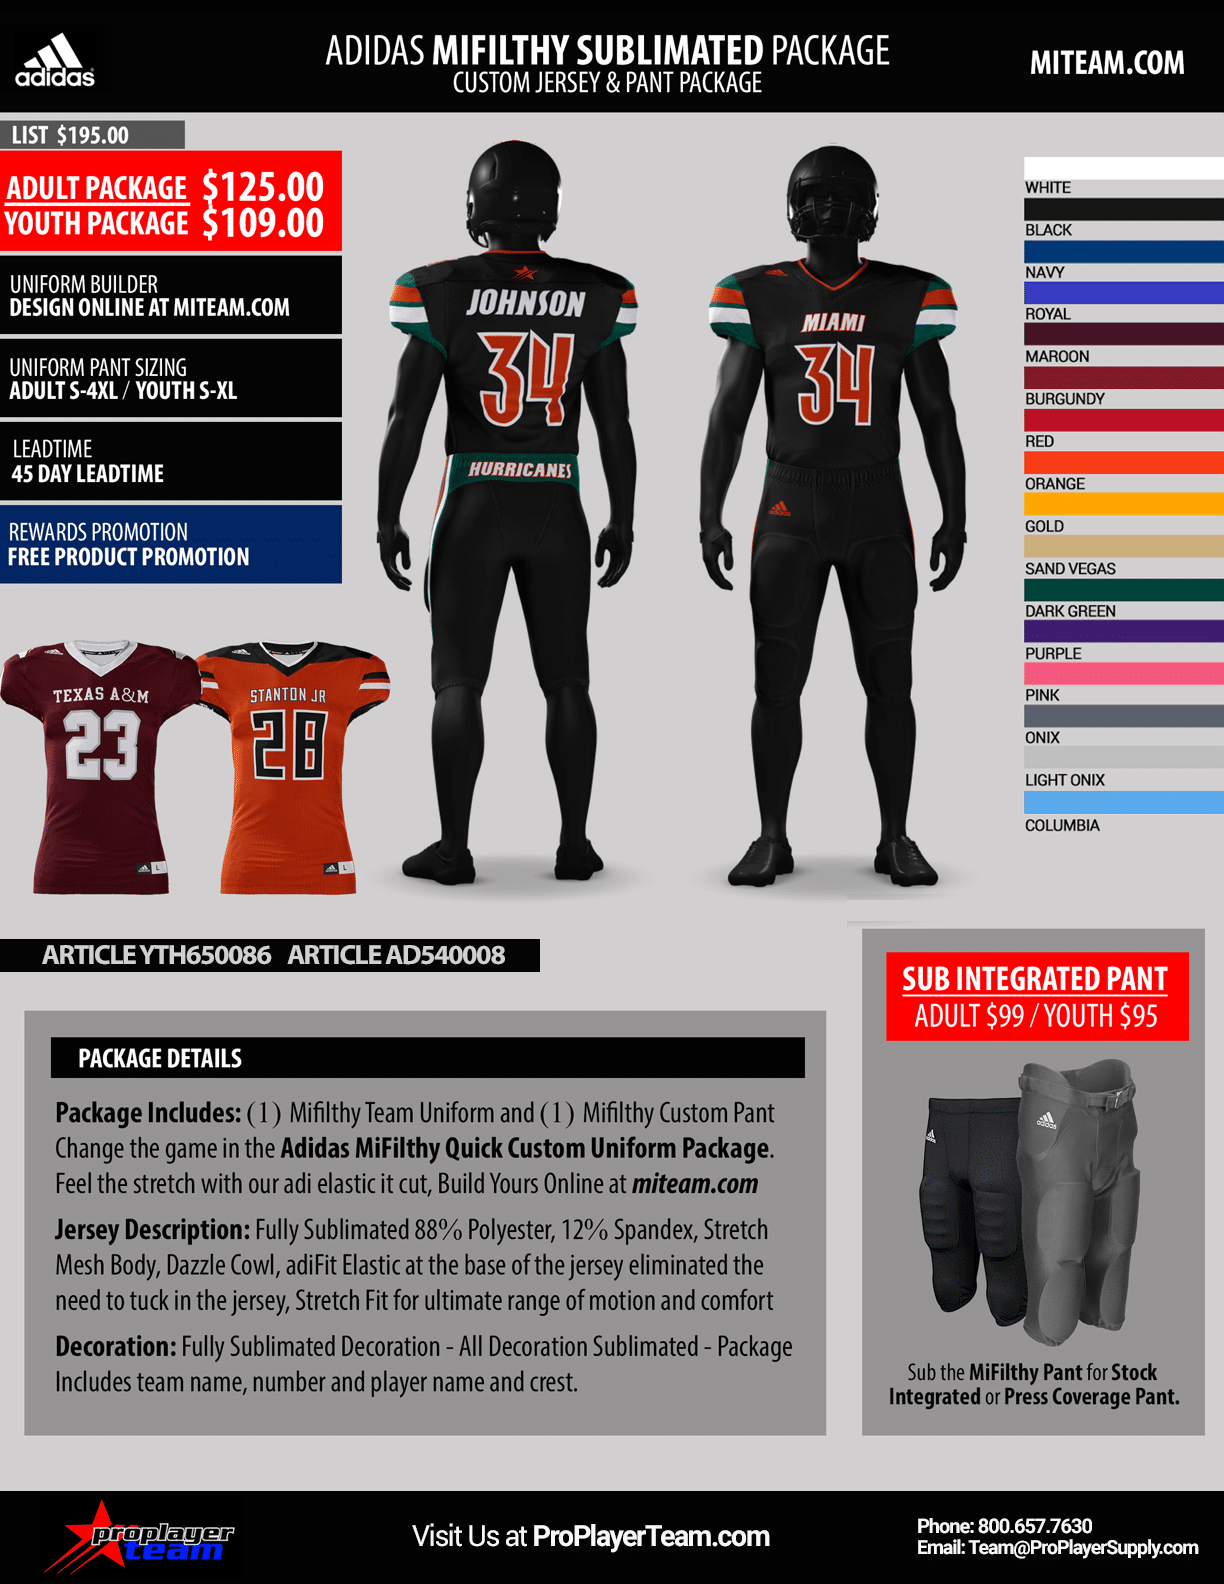 fe2d447efdc1 Order Now! Pay Later. Payment Plan s Available. Uniform Package Link